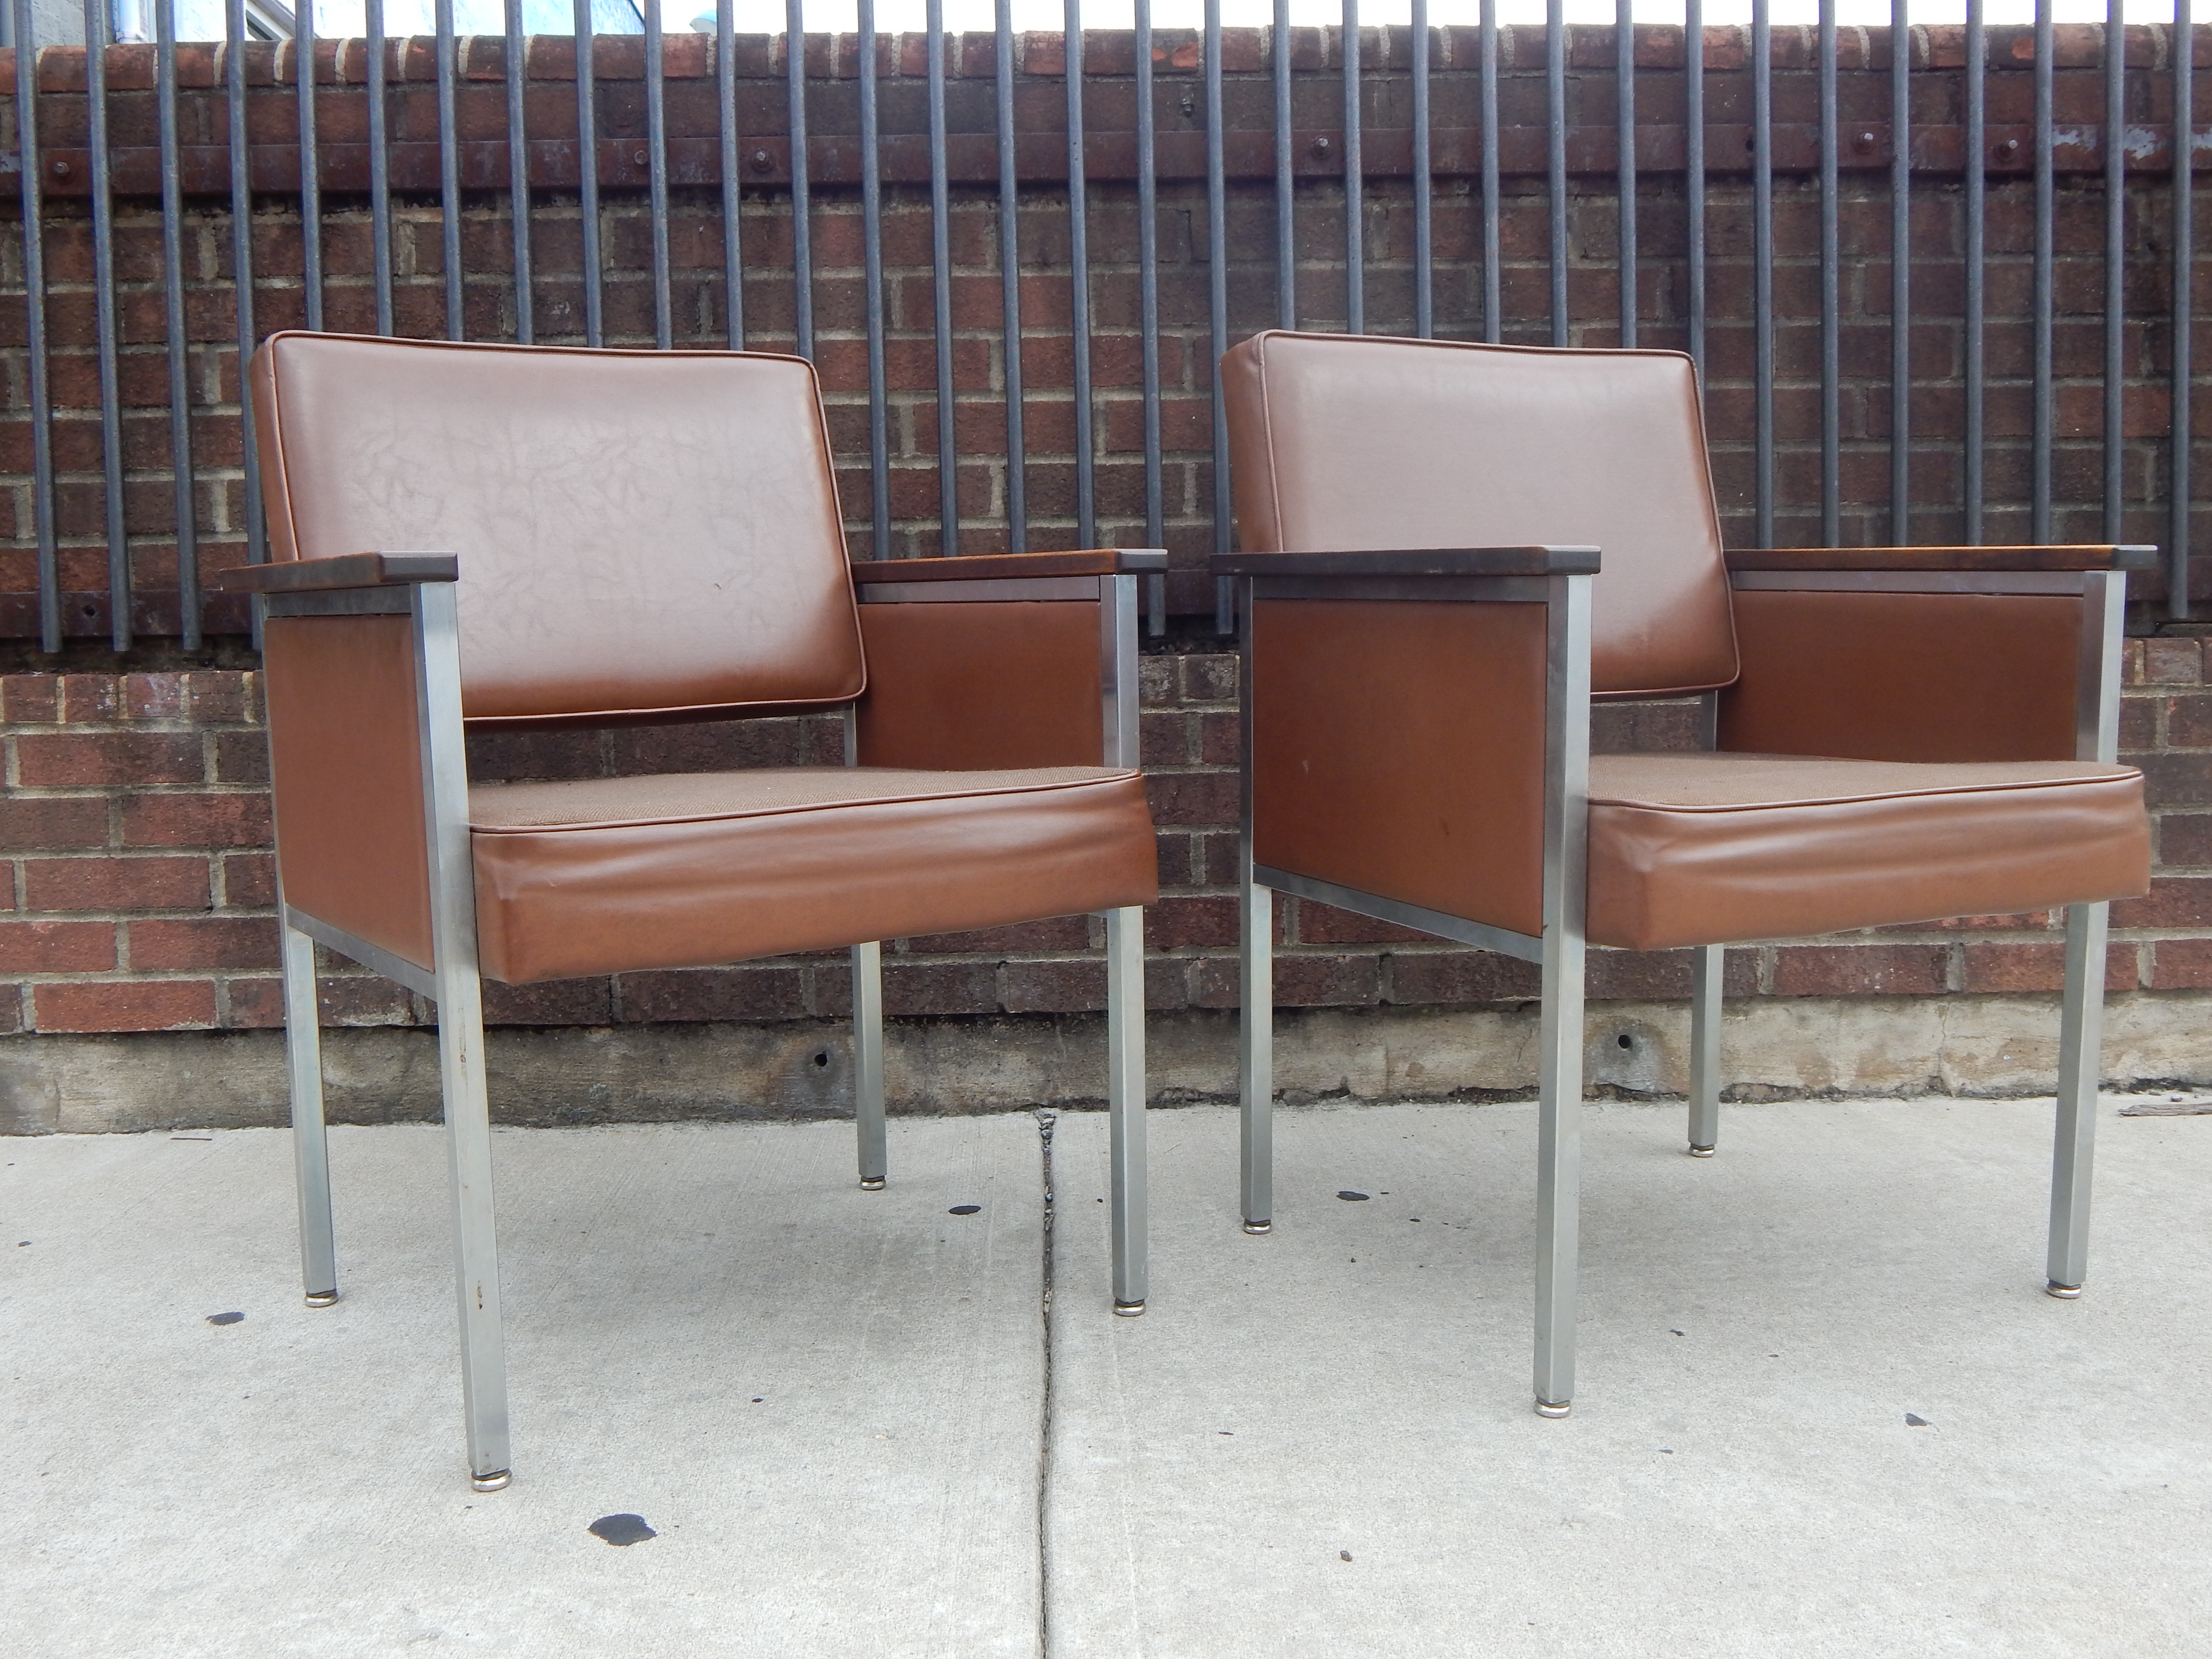 Pair of Vintage Mid Century fice Chairs In Brown by All Steel